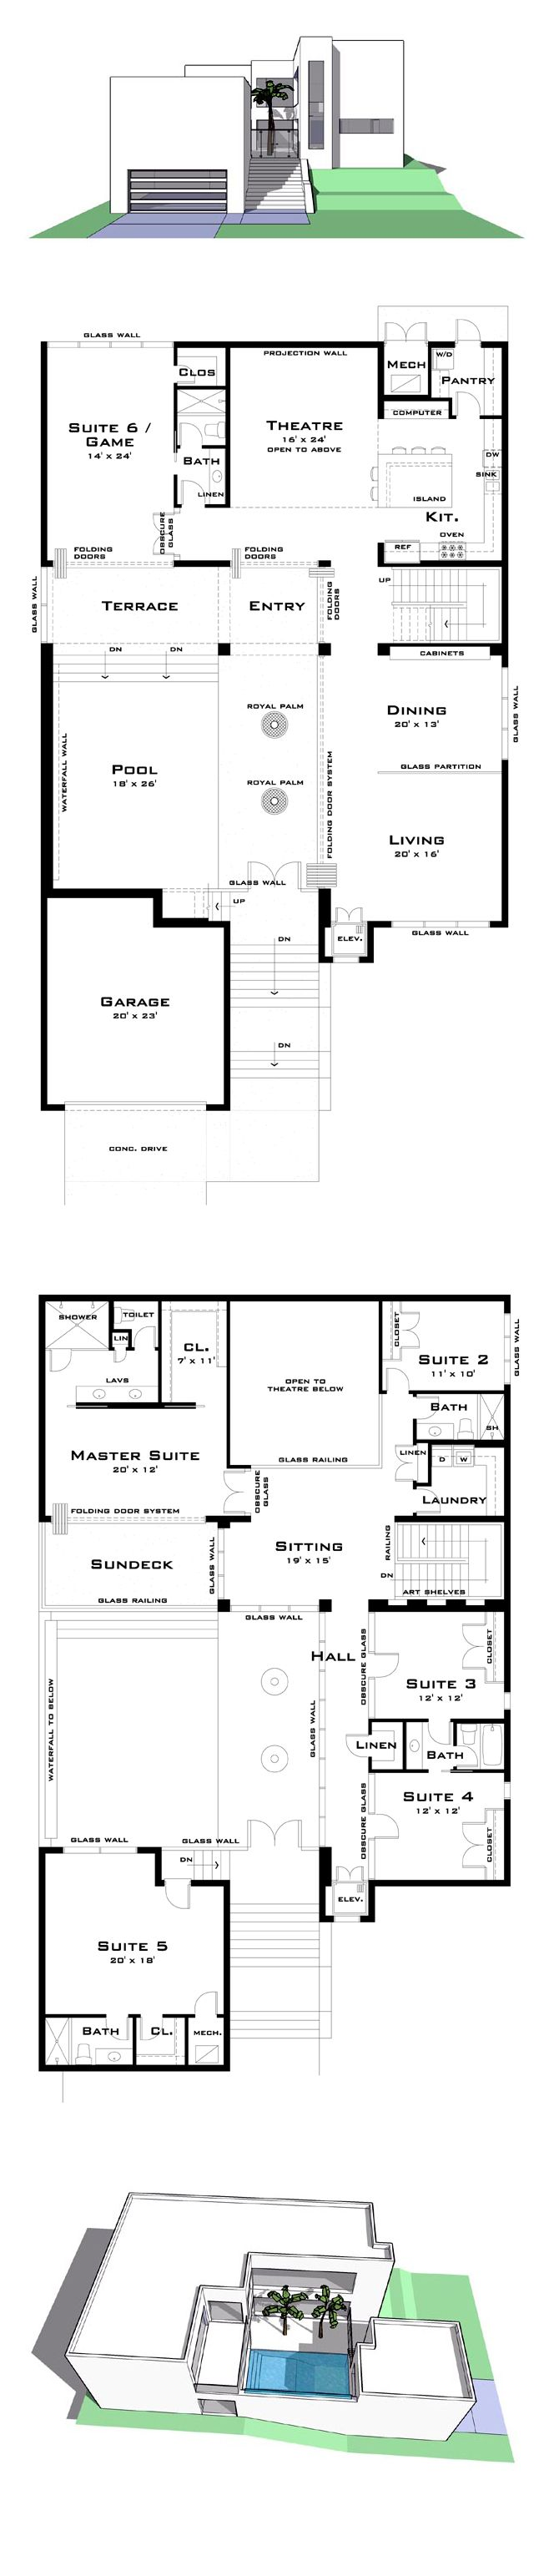 COOL House Plan ID: chp-39626 | Total Living Area: 4757 sq. ft., 6 bedrooms & 5 bathrooms. The interior of the home faces the pool courtyard which is filled with the sound of the waterfall wall. The family theatre is connected with the kitchen and provides a two story movie projection space. #houseplan #courtyard